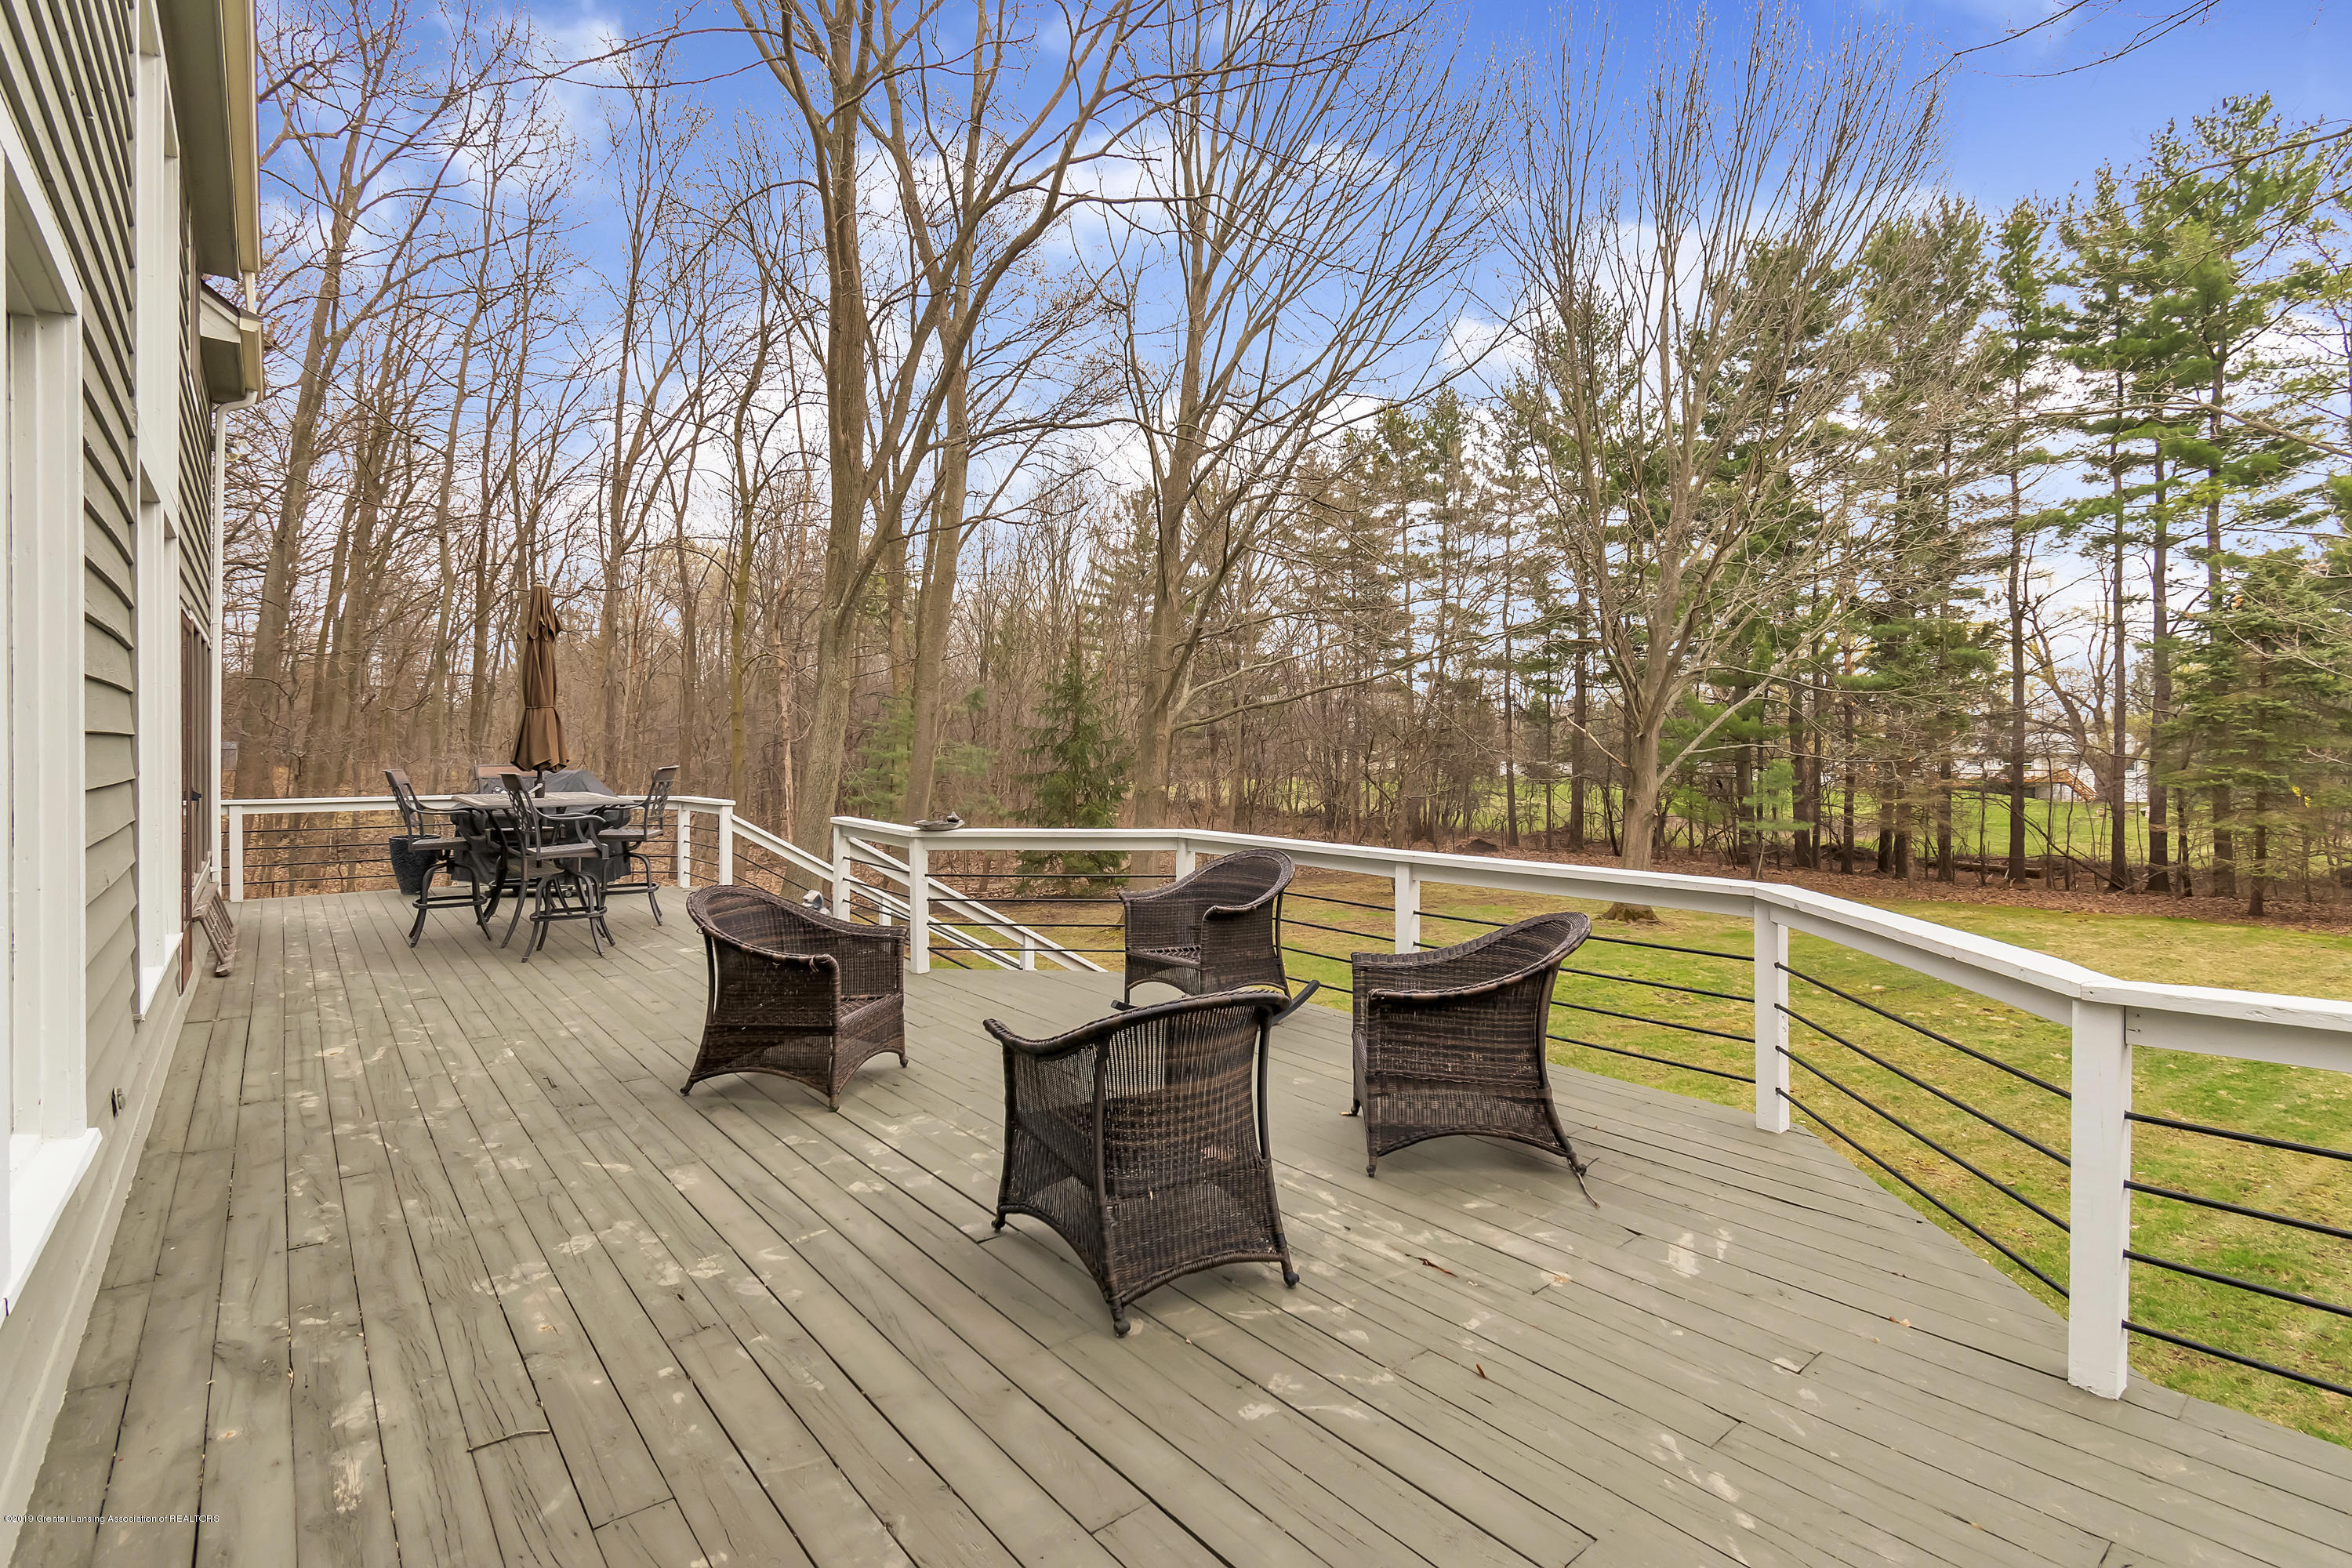 2423 Haslett Rd - Deck overlooking Yard - 30